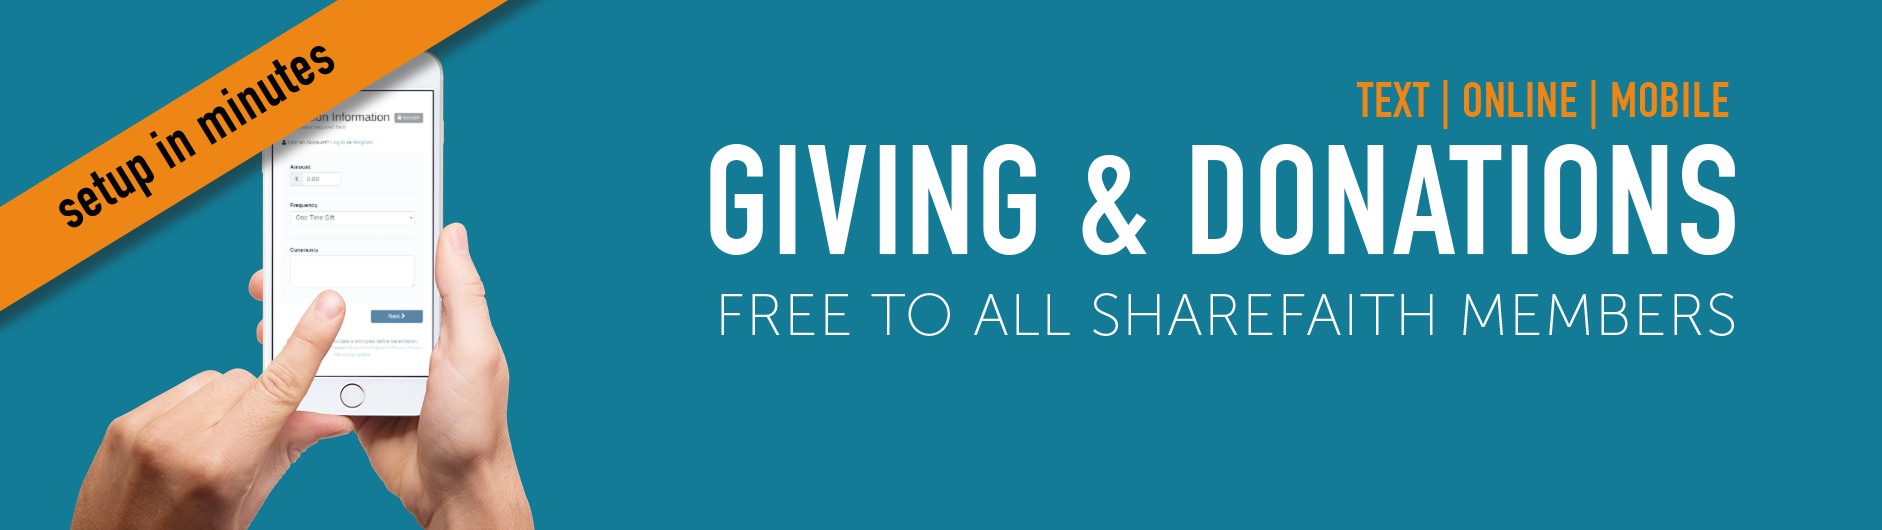 Online Mobile Giving and Donations for Church